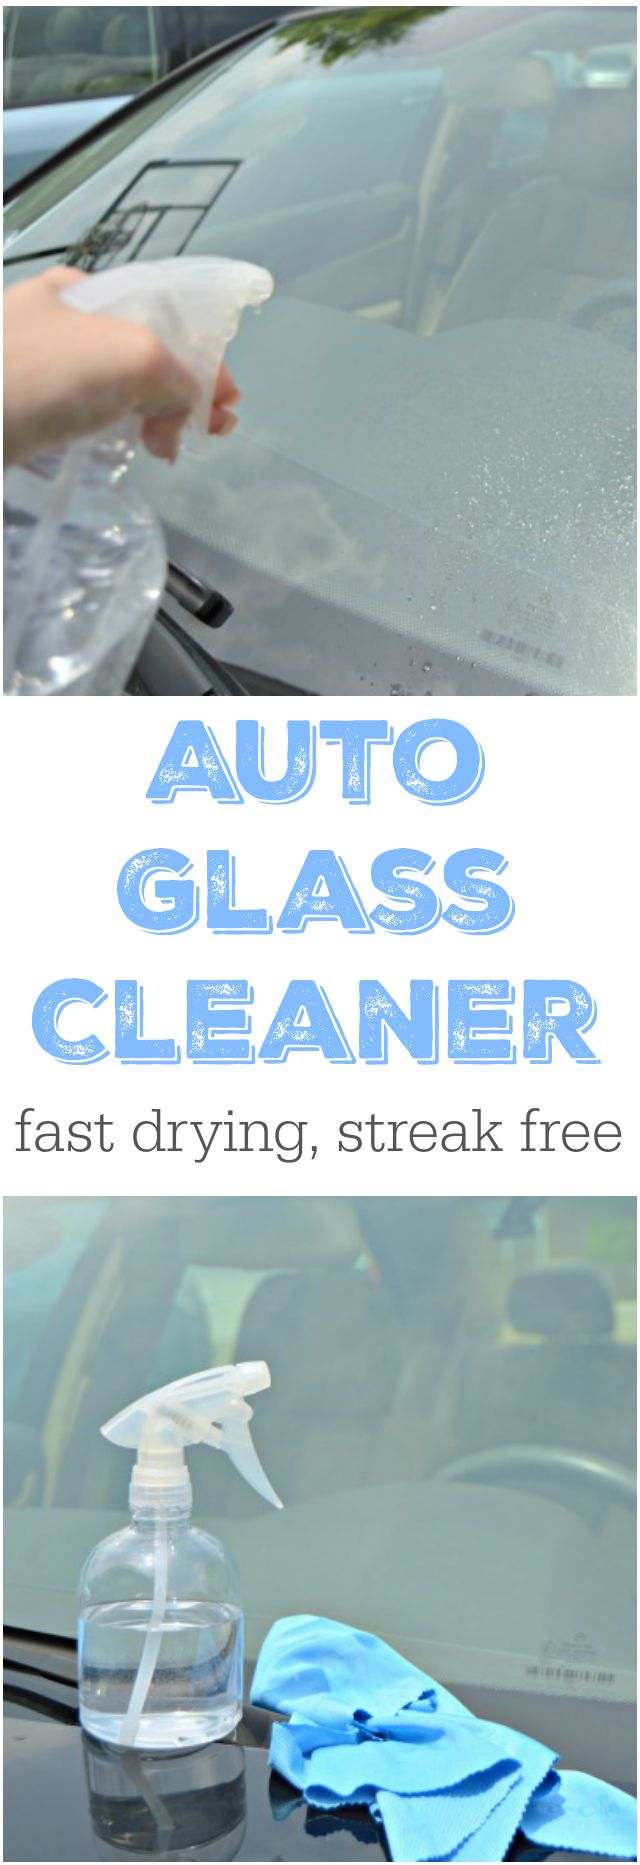 Homemade Auto Glass Cleaner - This fast drying car window cleaner will leave your windows clean and streak free!